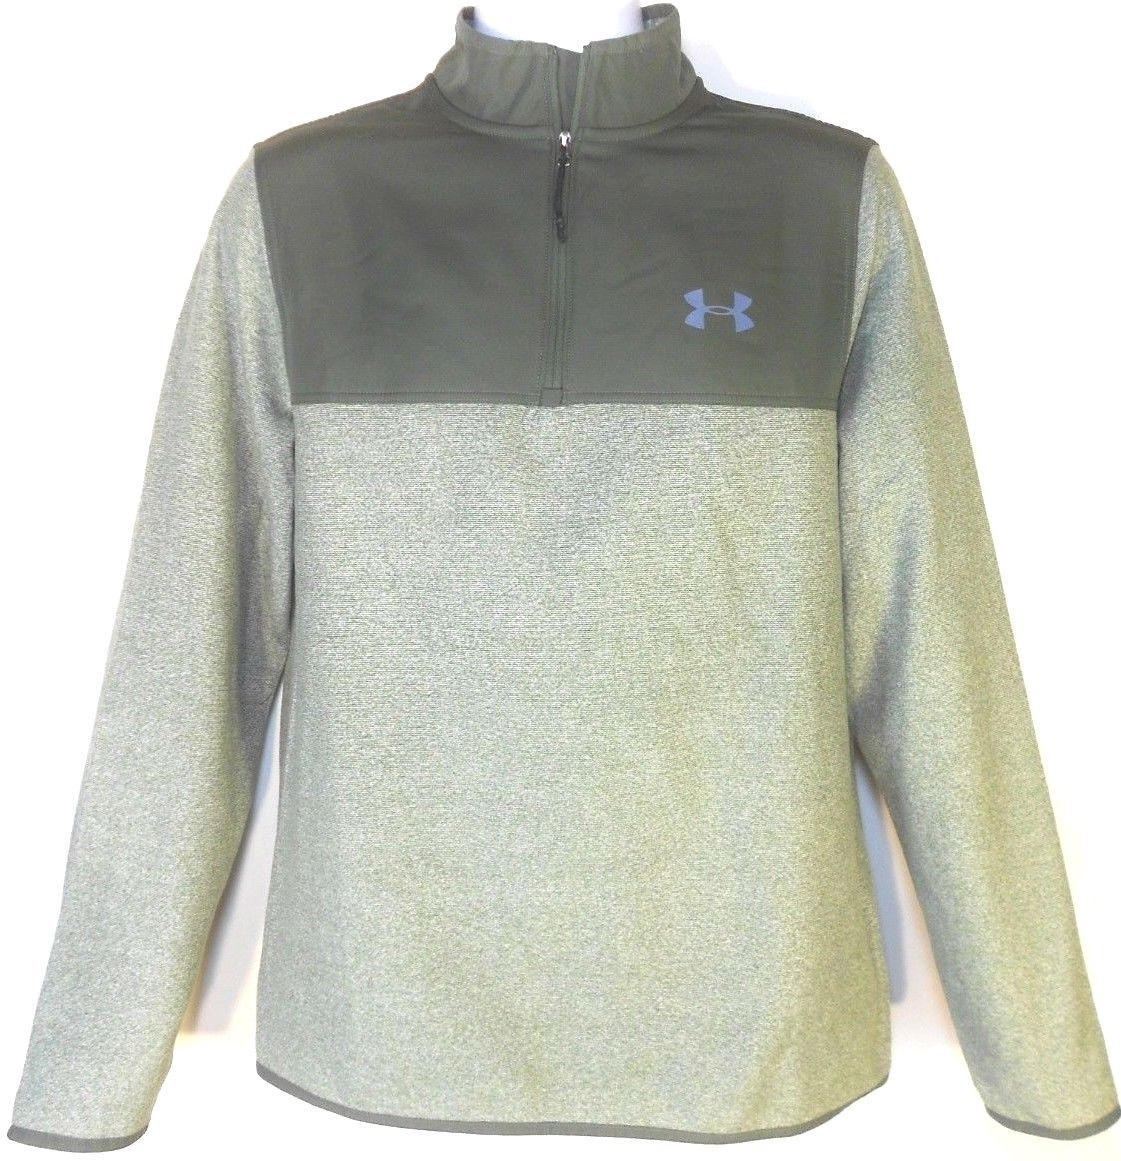 Primary image for UNDER ARMOUR MEN'S CGI FLEECE 1/4 Zip HOODIE JACKET Sz M, #1282948-330